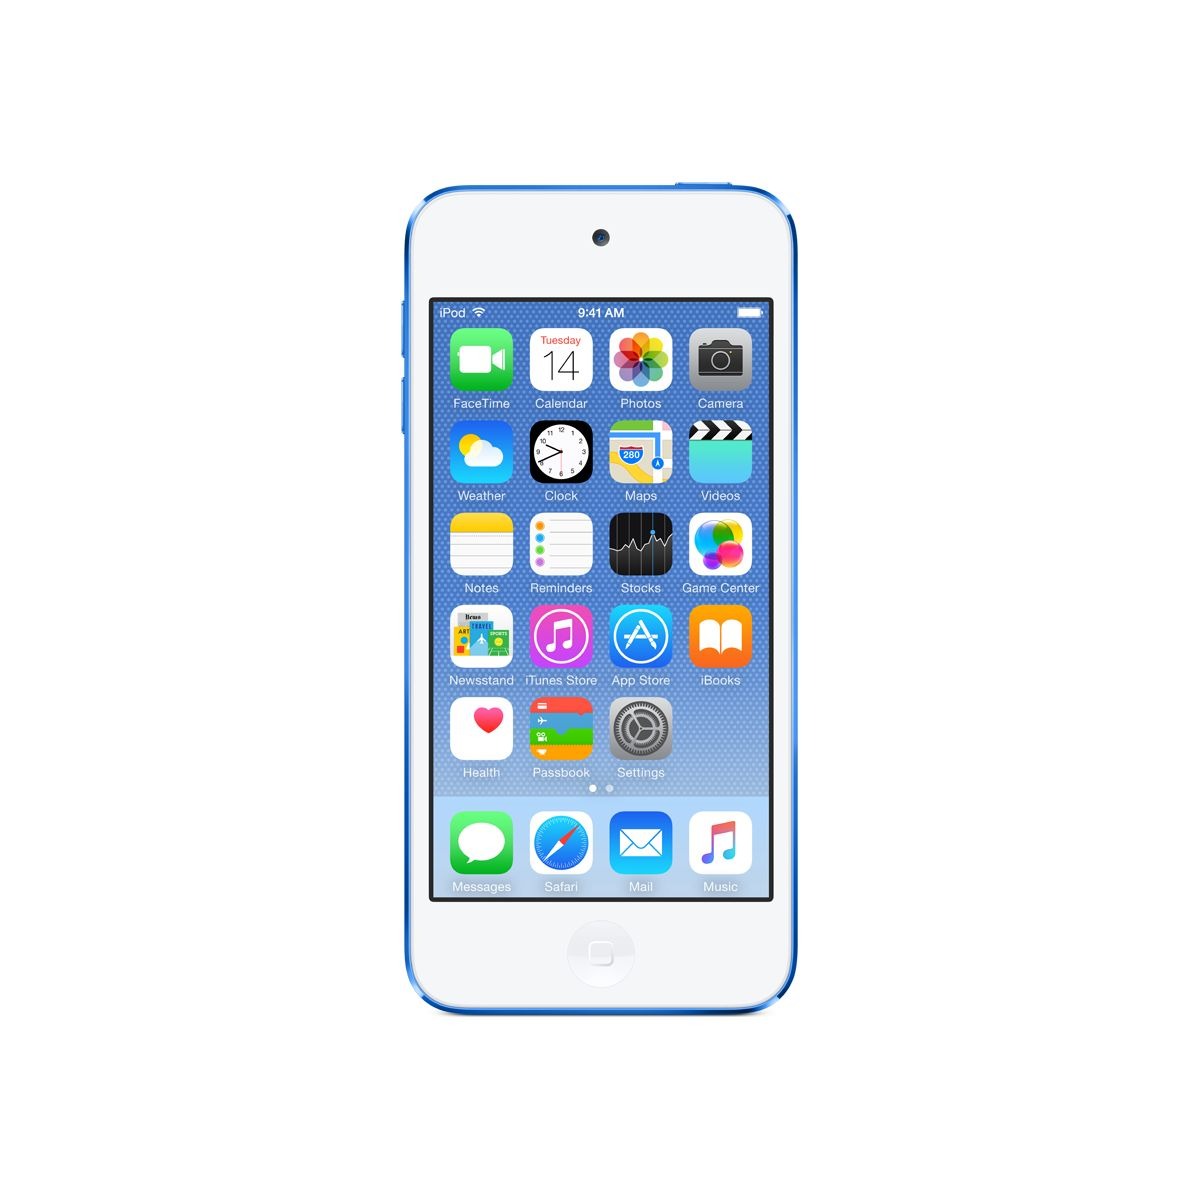 Apple ipod touch 64 go bleu - livraison offerte : code chronoff (photo)